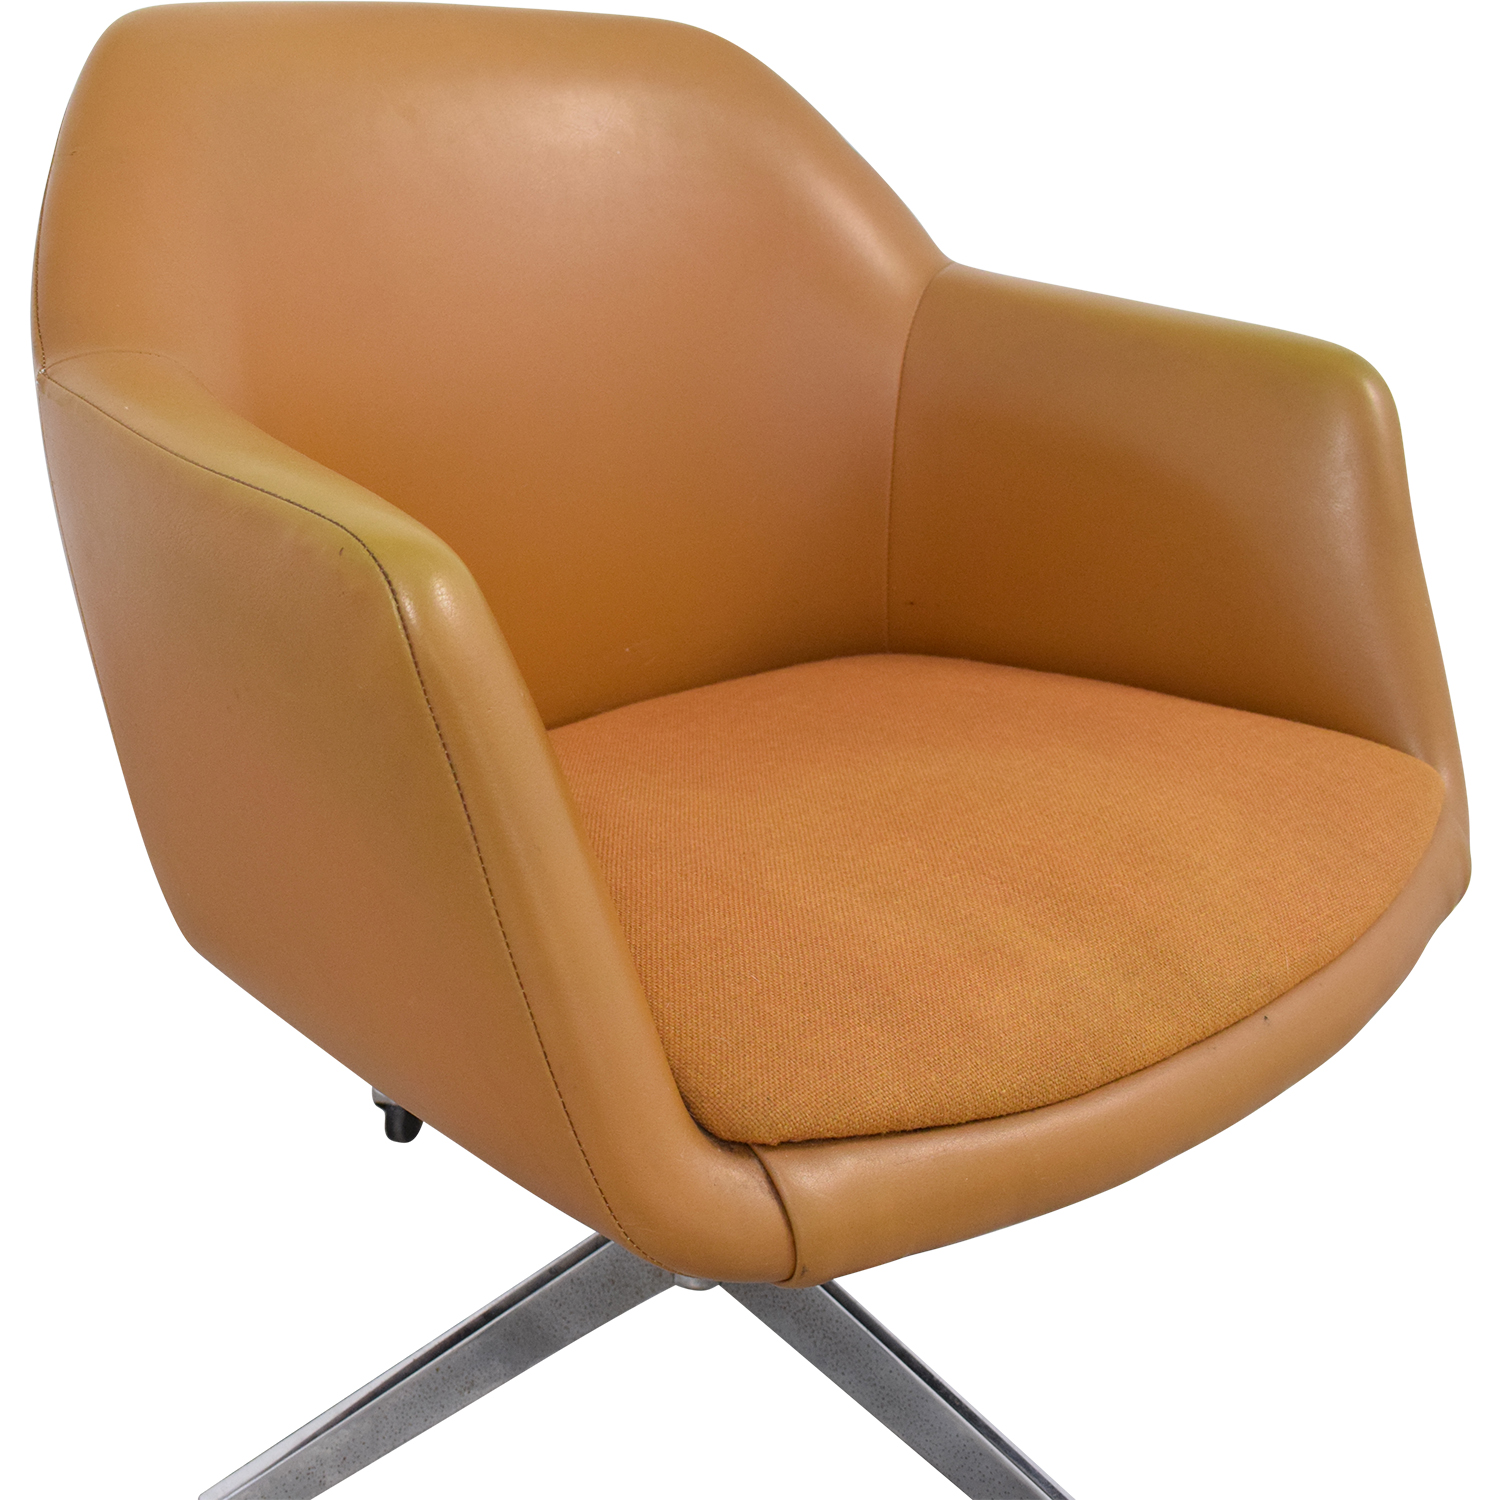 Steelcase Steelcase Mid Century Office Chair Chairs